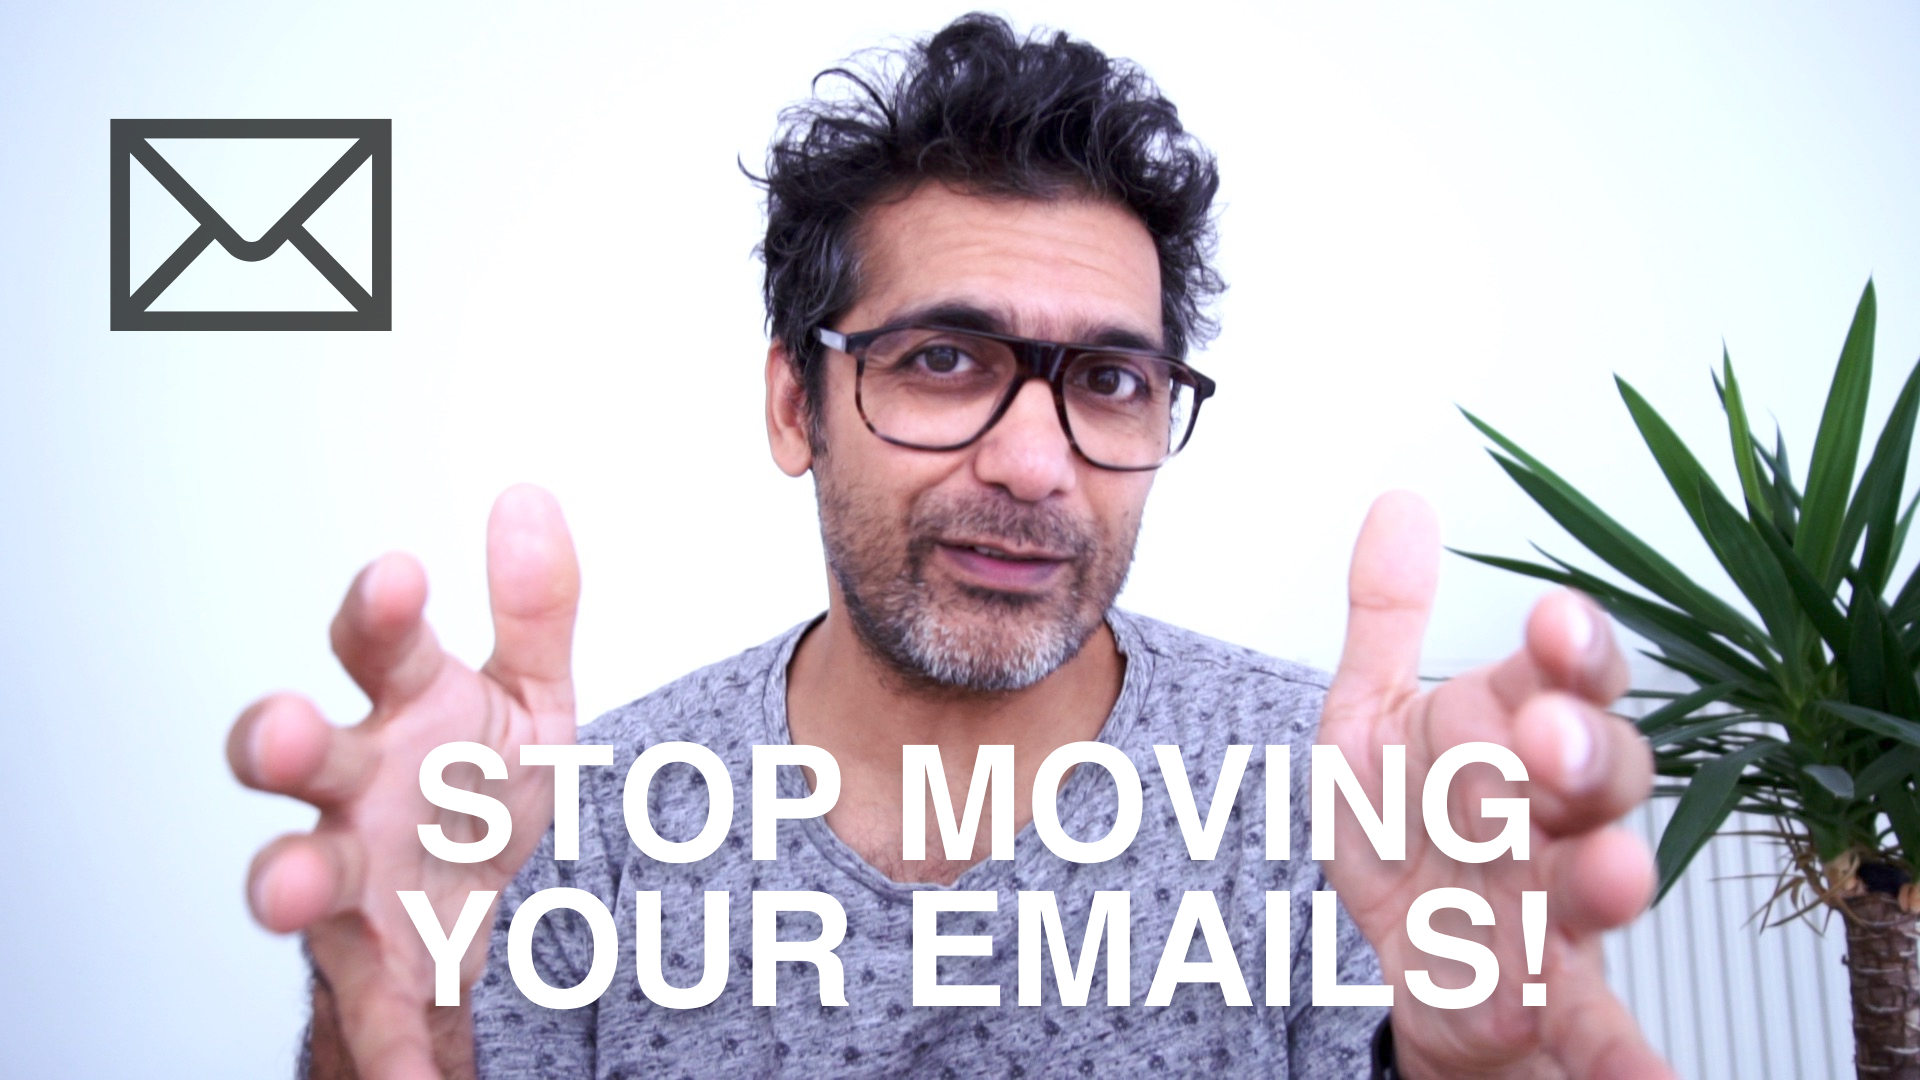 Stop moving your emails!